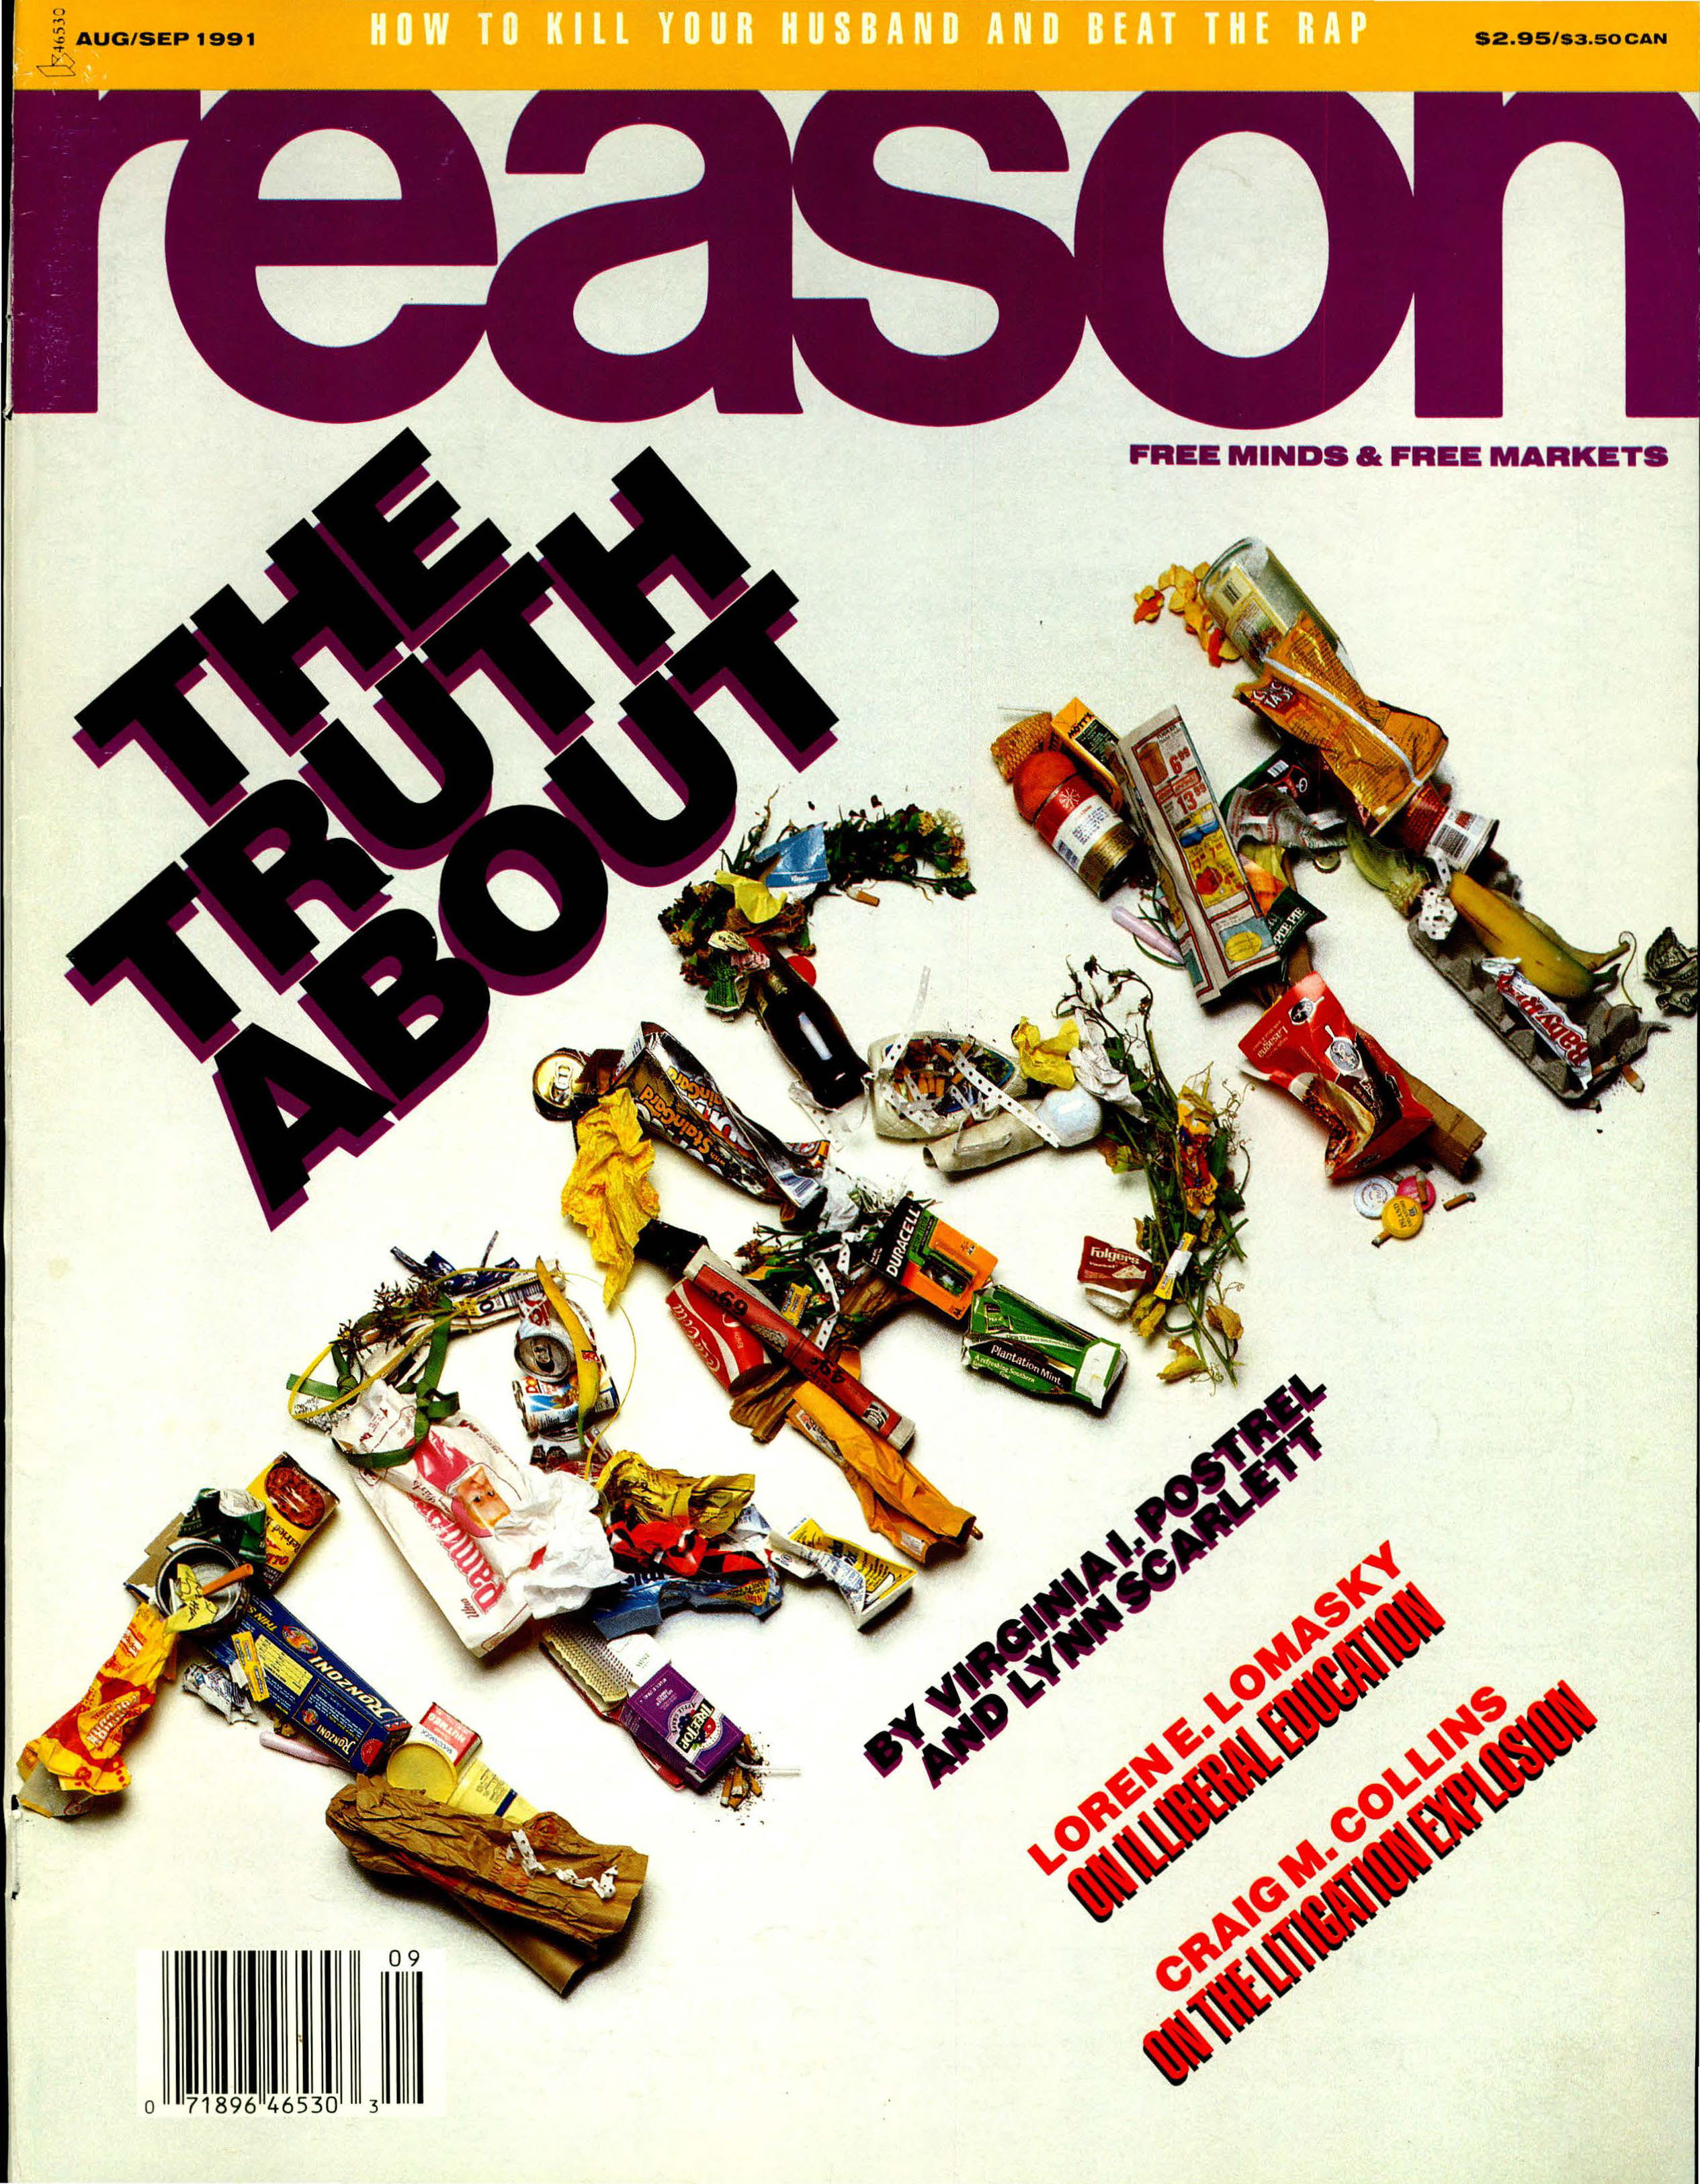 Reason Magazine, August/September 1991 cover image